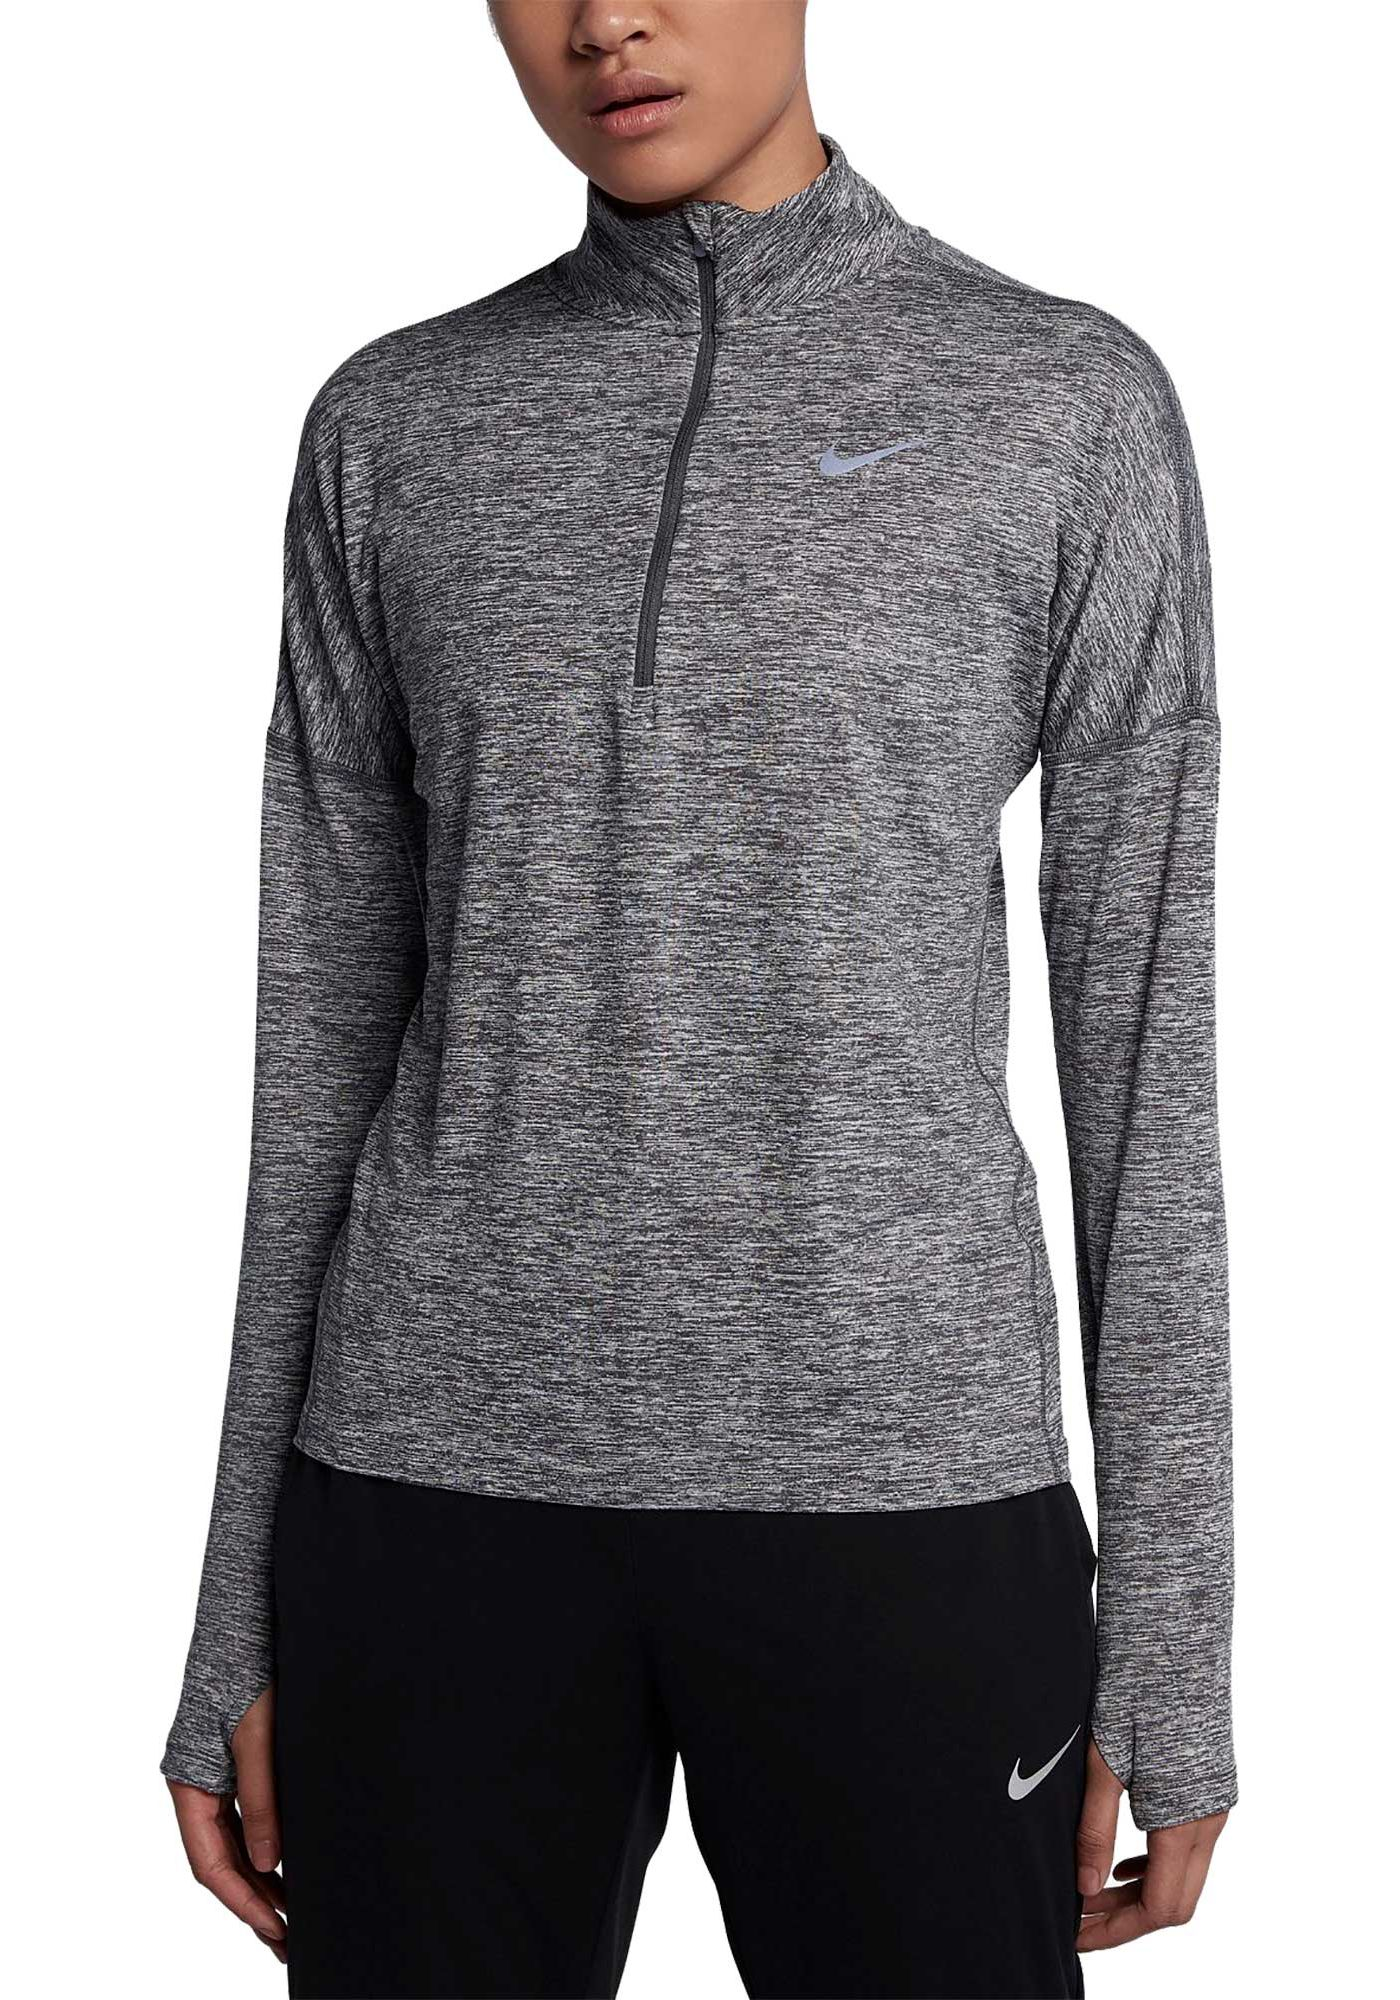 Nike Women's Dry Element Half Zip Long Sleeve Running Shirt